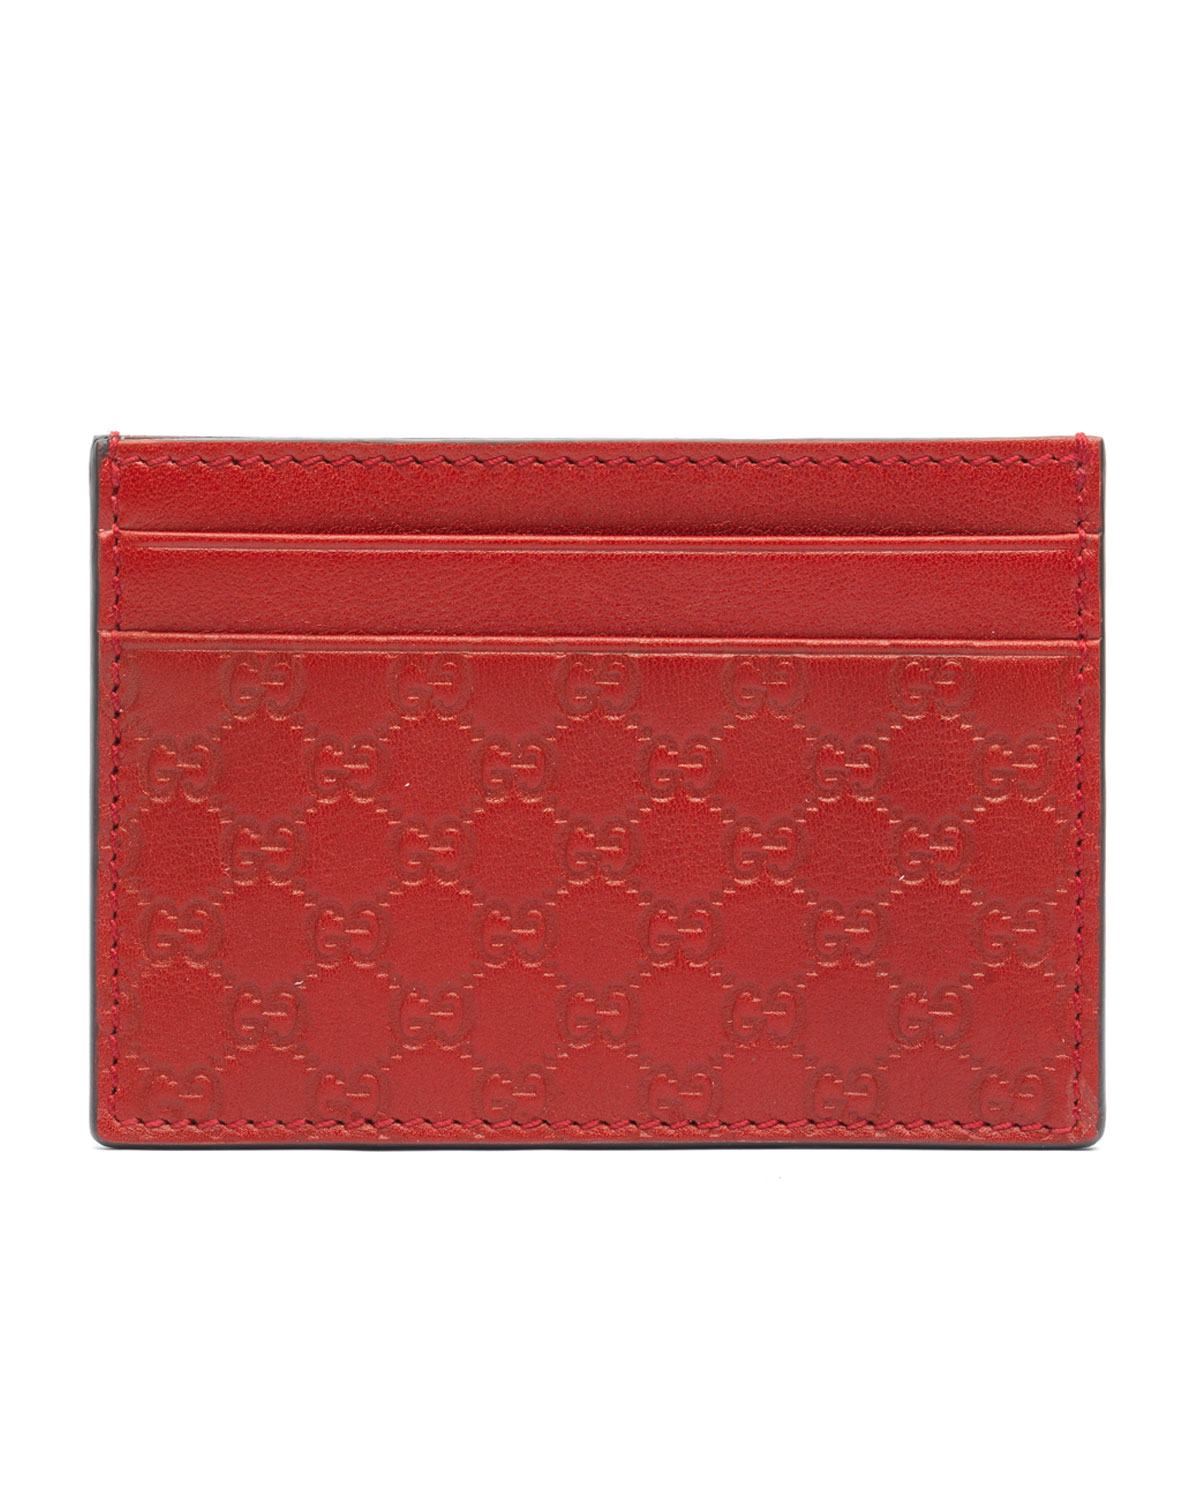 cd3c81ac03f2 Gucci Microguccissima Leather Money Clip, Red | Neiman Marcus